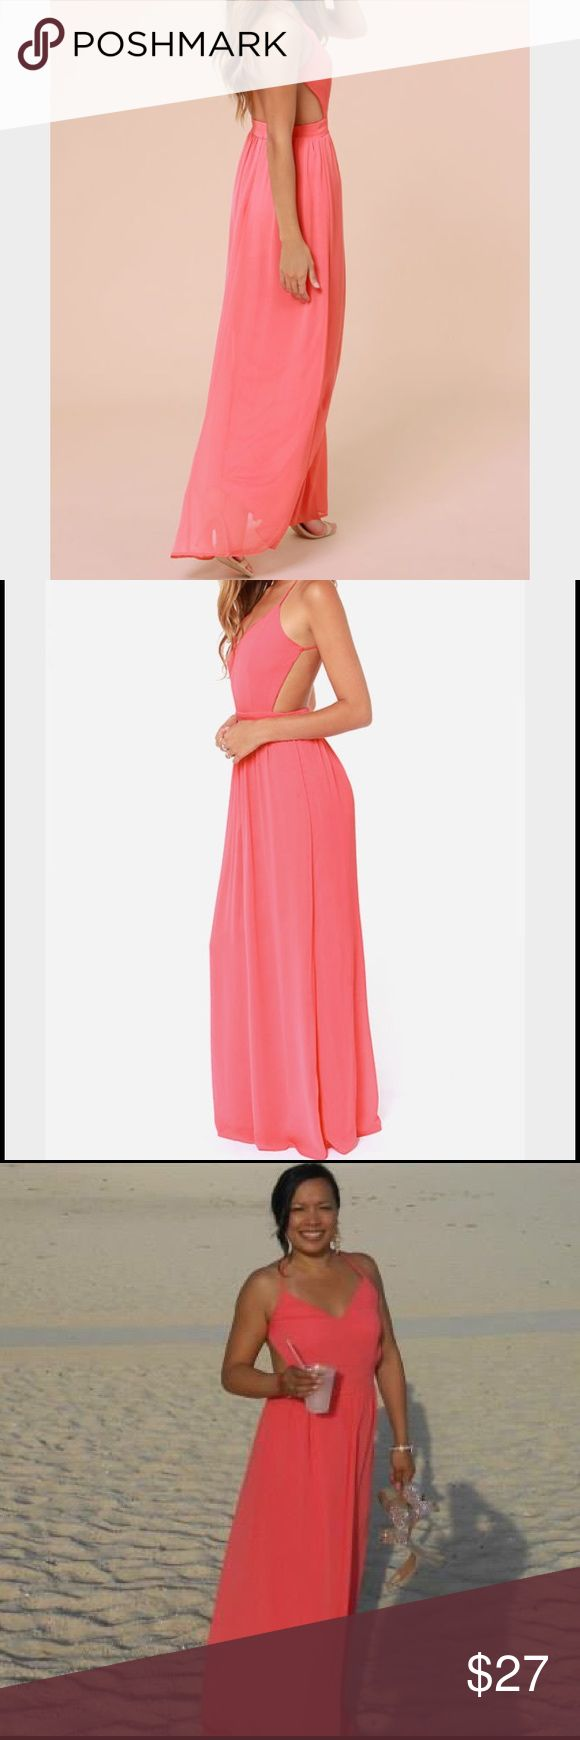 Lulu's Backless Coral Maxi Dress This gorgeous Lulu's Coral Backless Maxi Dress is perfect anytime.  Sophisticated and sexy at the same time!  Worn once to a  beach wedding. *Shop my closet for discounts on bundles* Lulu's Dresses Maxi